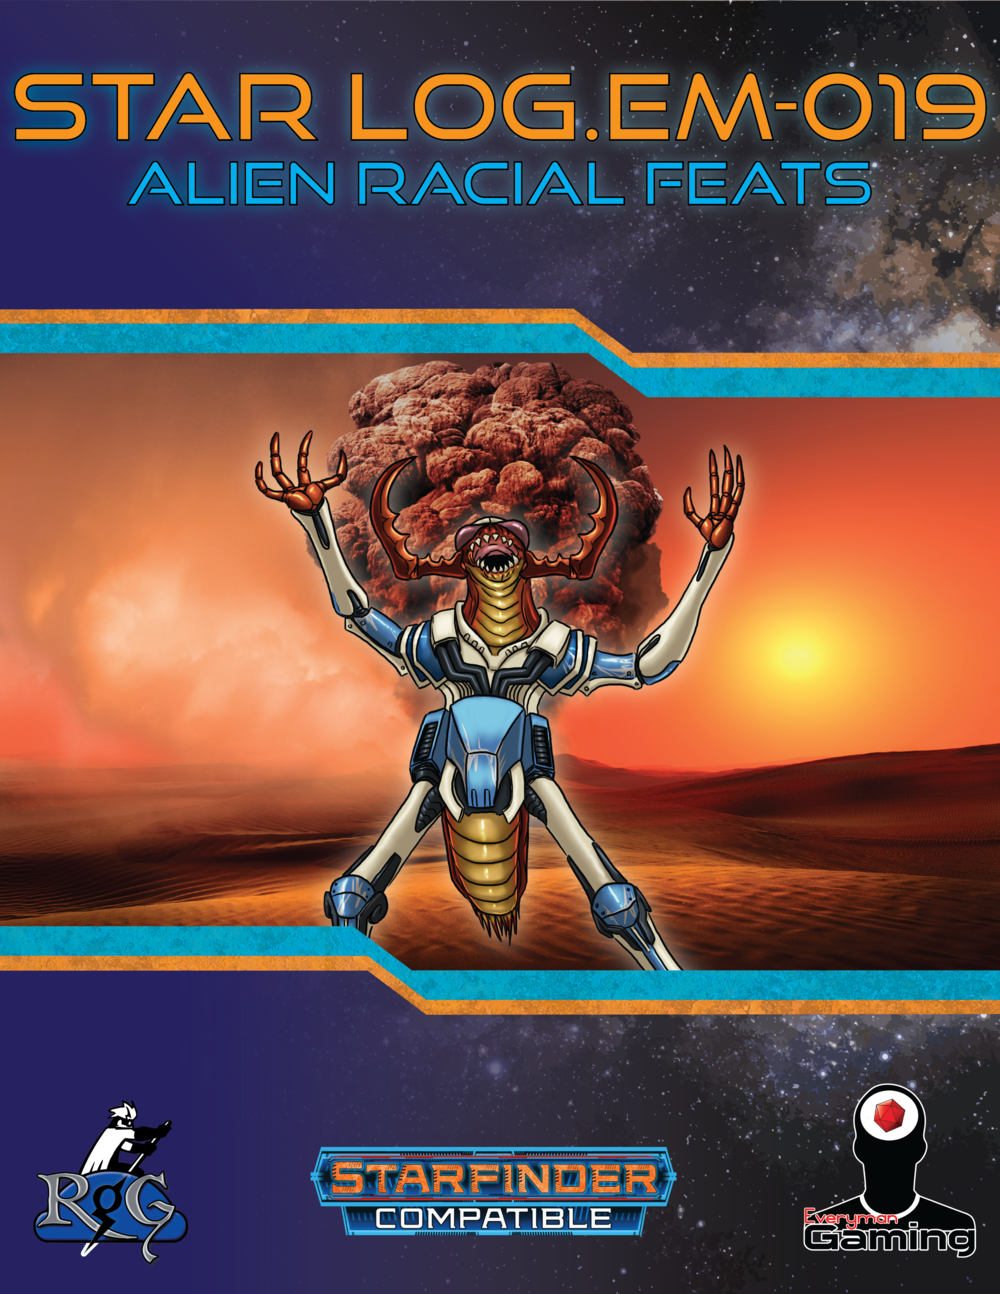 SF019 Alien Racial Feats.png